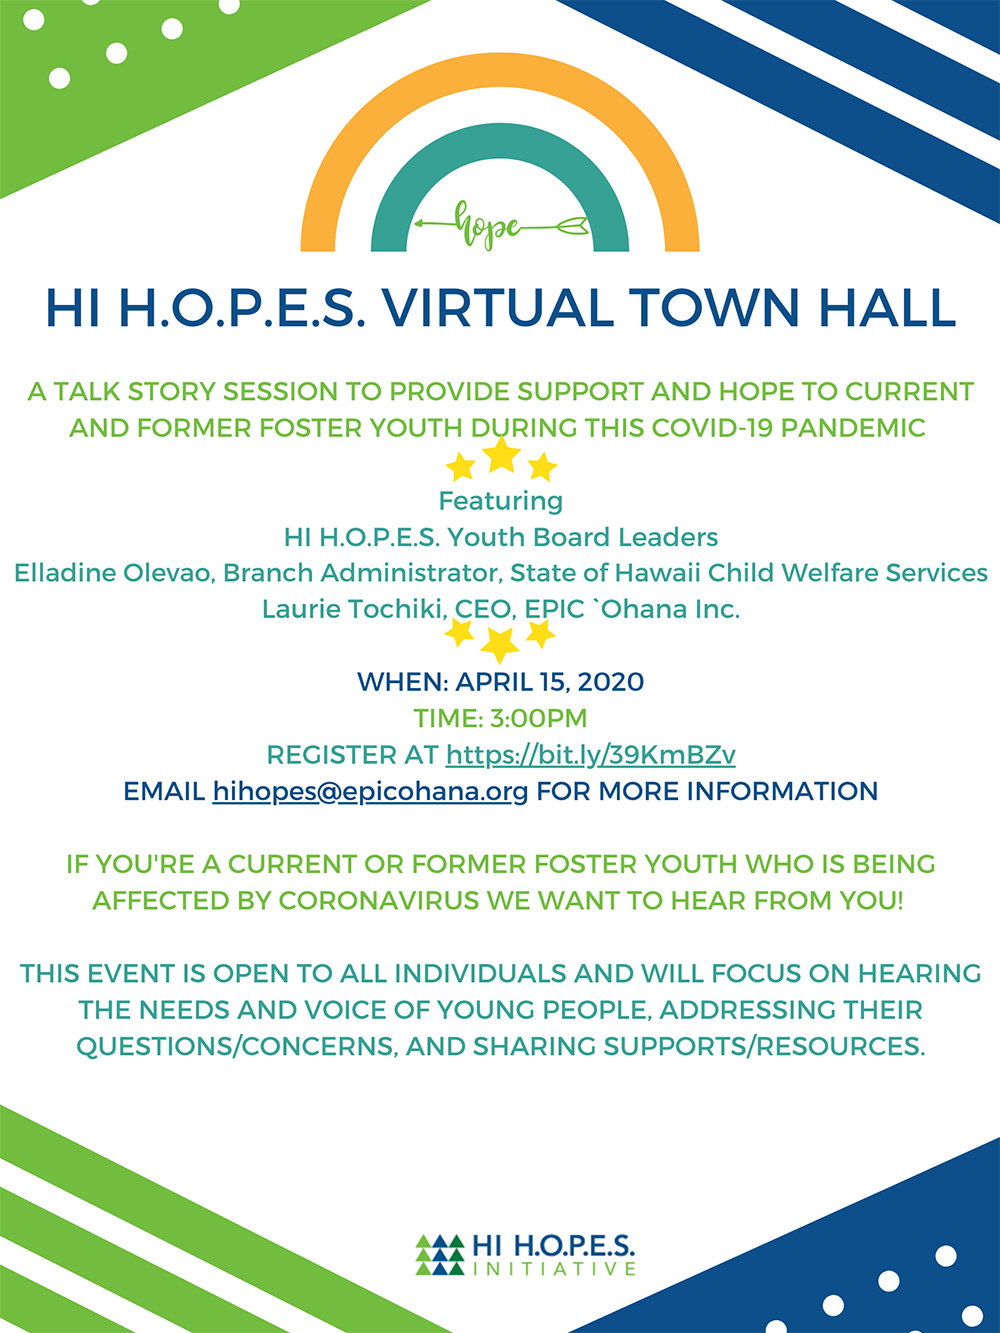 HI H.O.P.E.S. Virtual Town Hall, April 15, 2020 Flyer